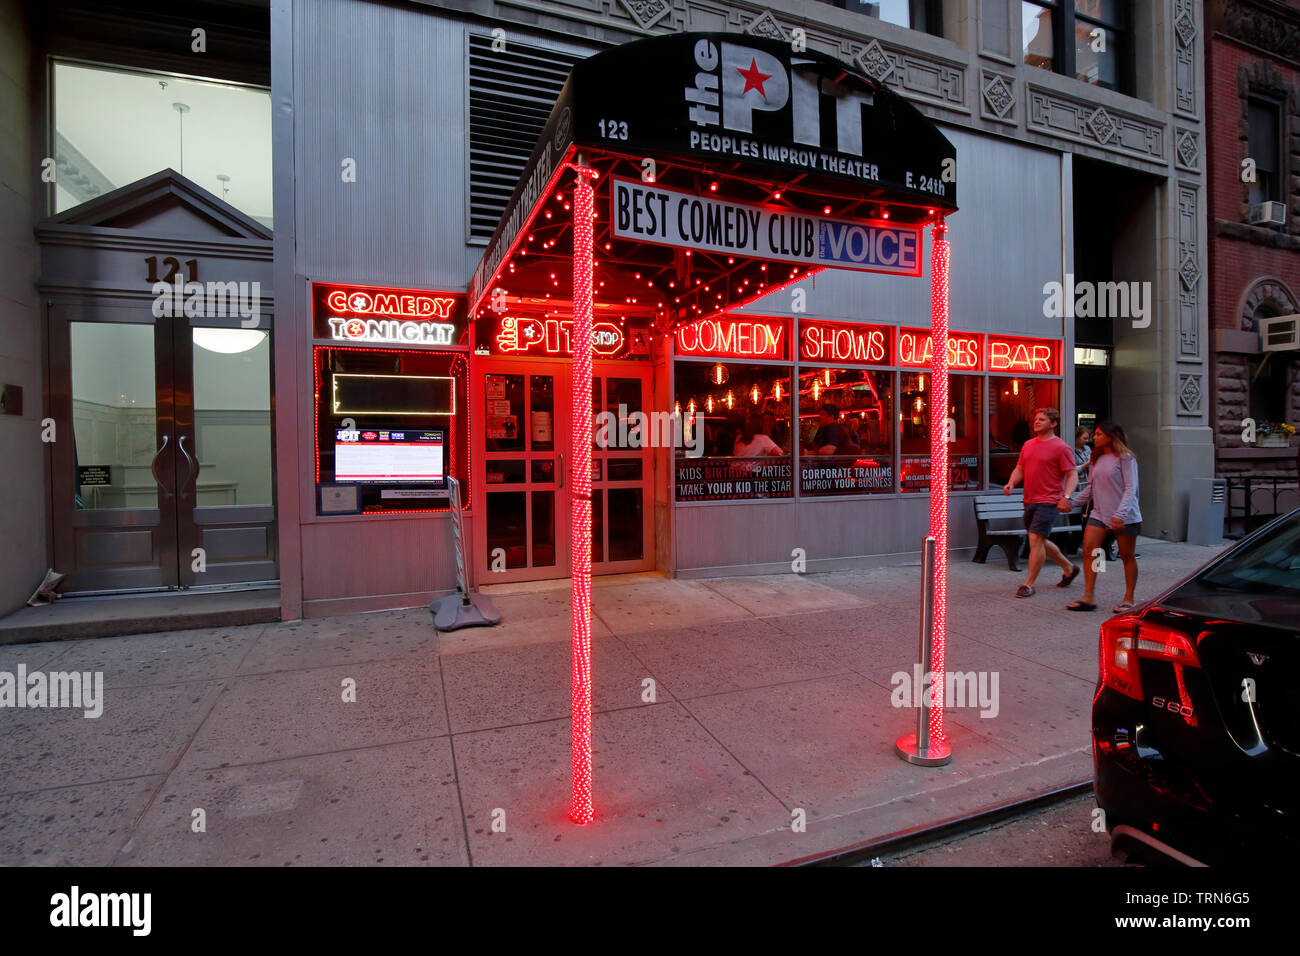 The People's Improv Theater, The PIT, 123 E 24th St, New York, NY. exterior storefront of a comedy club in the Rose Hill neighborhood of Manhattan. Stock Photo